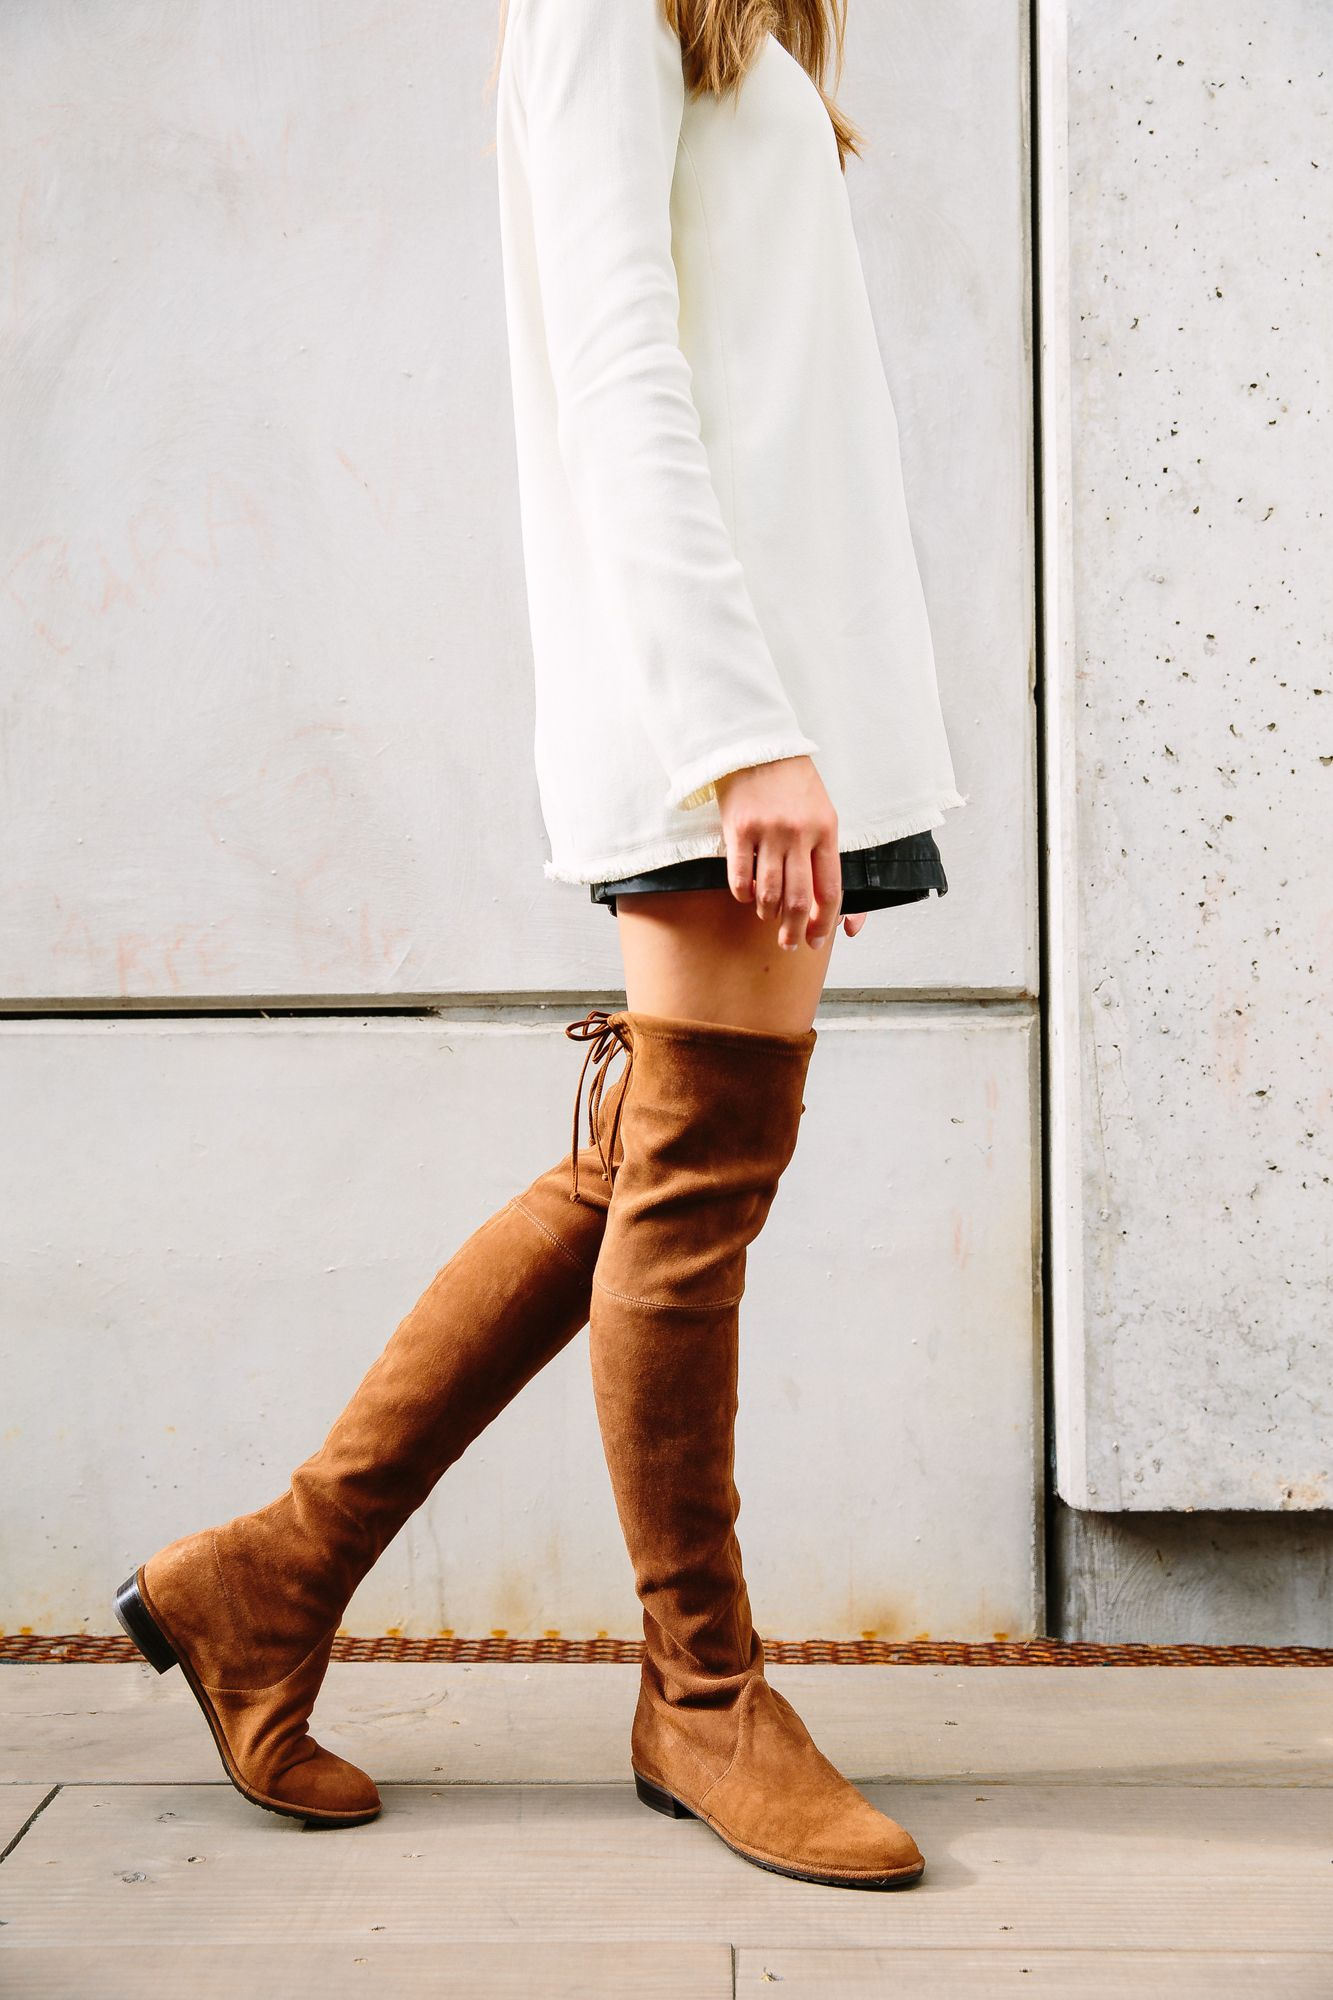 992638da24d Camille Styles in the LOWLAND Boots in the Walnut Suede.